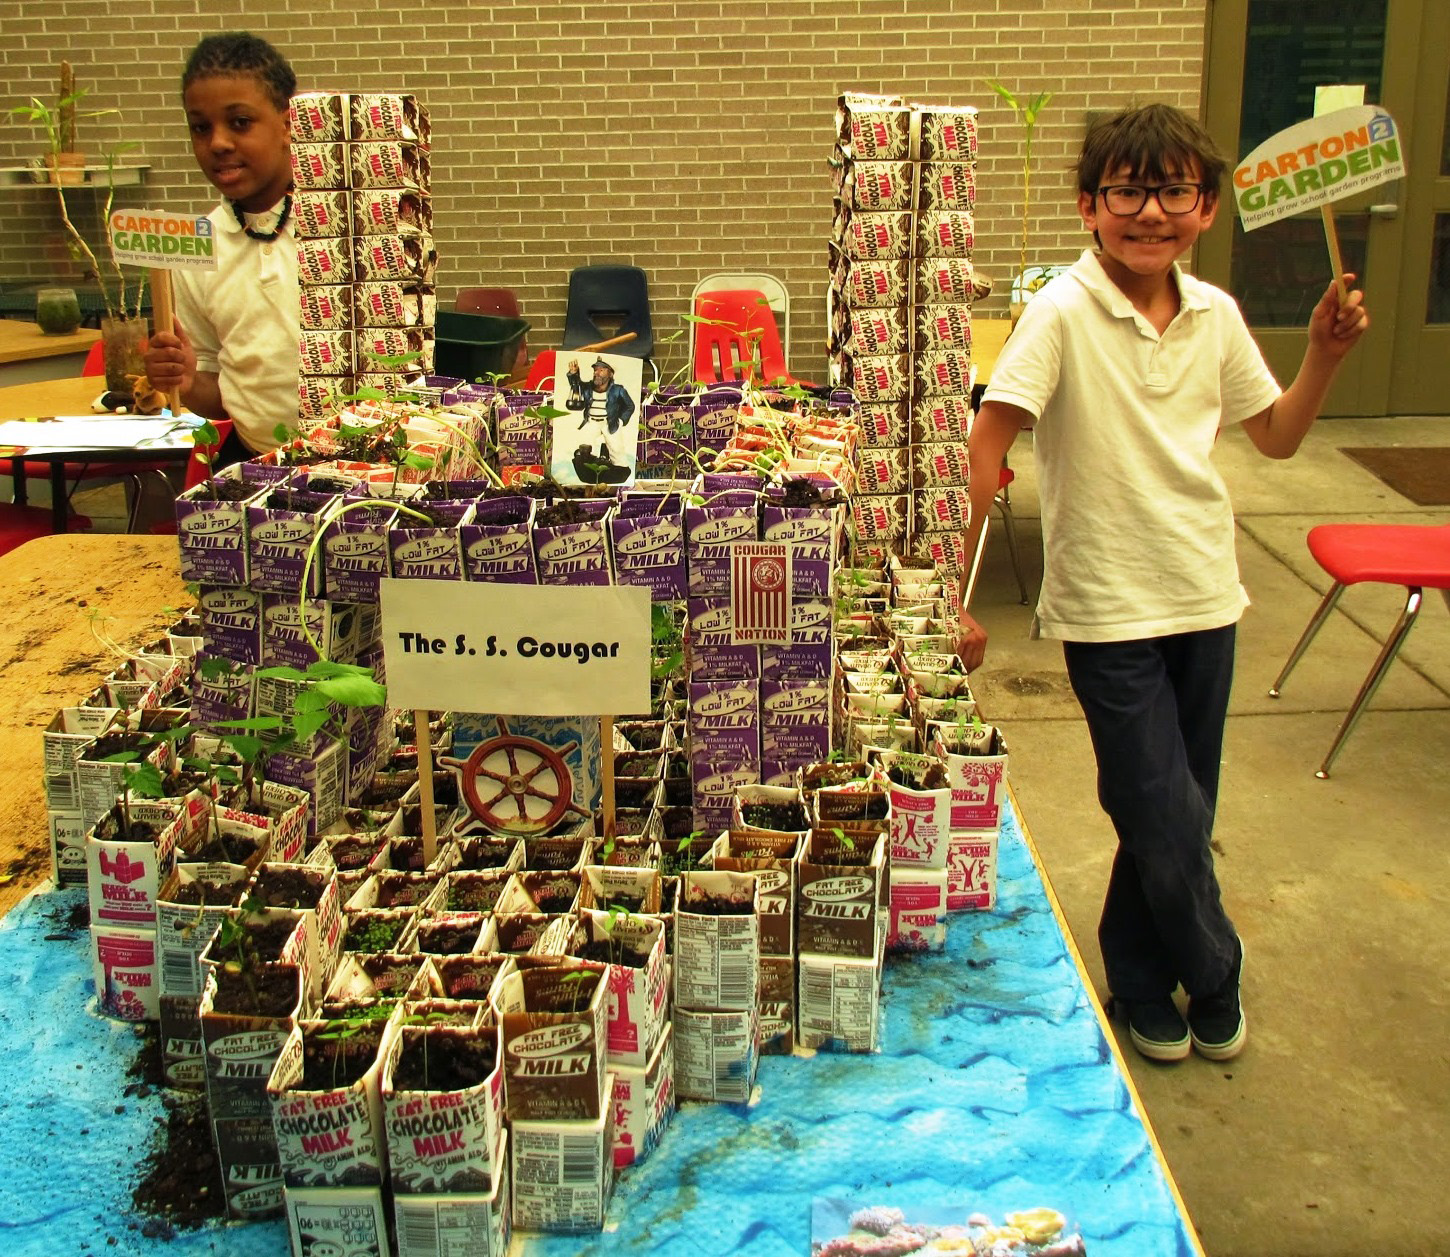 """The Carton 2 Garden Contest helped Cordova Middle School make their school """"greener"""" and beautified their campus while educating the students on recycling and healthy living."""